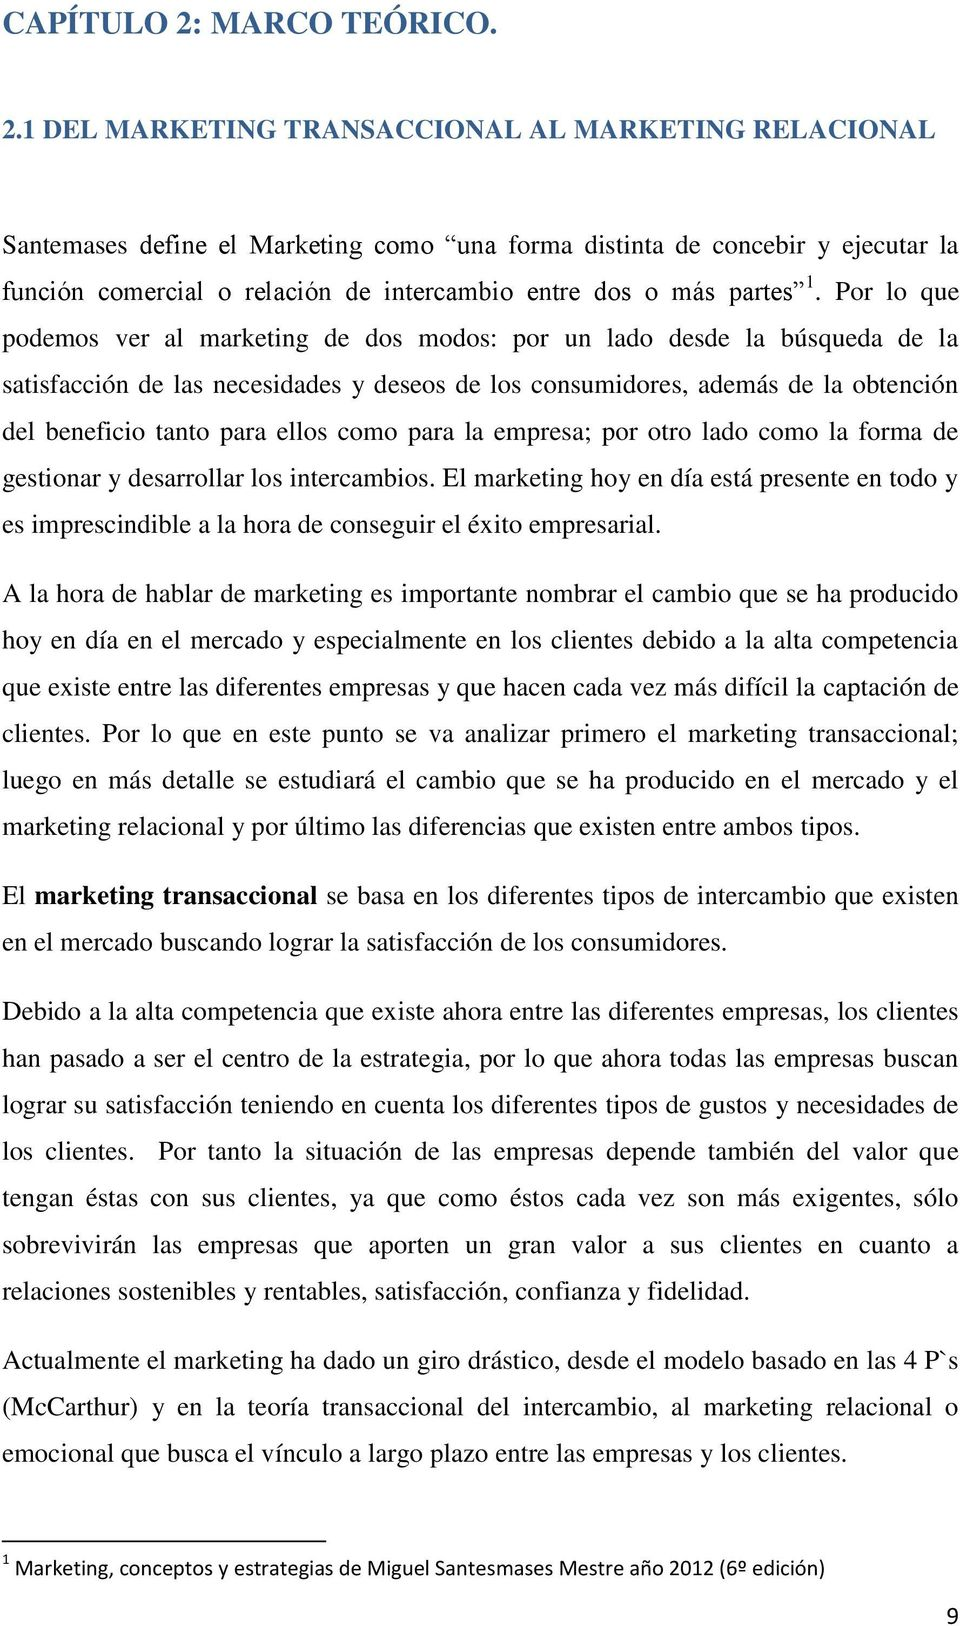 1 DEL MARKETING TRANSACCIONAL AL MARKETING RELACIONAL Santemases define el Marketing como una forma distinta de concebir y ejecutar la función comercial o relación de intercambio entre dos o más